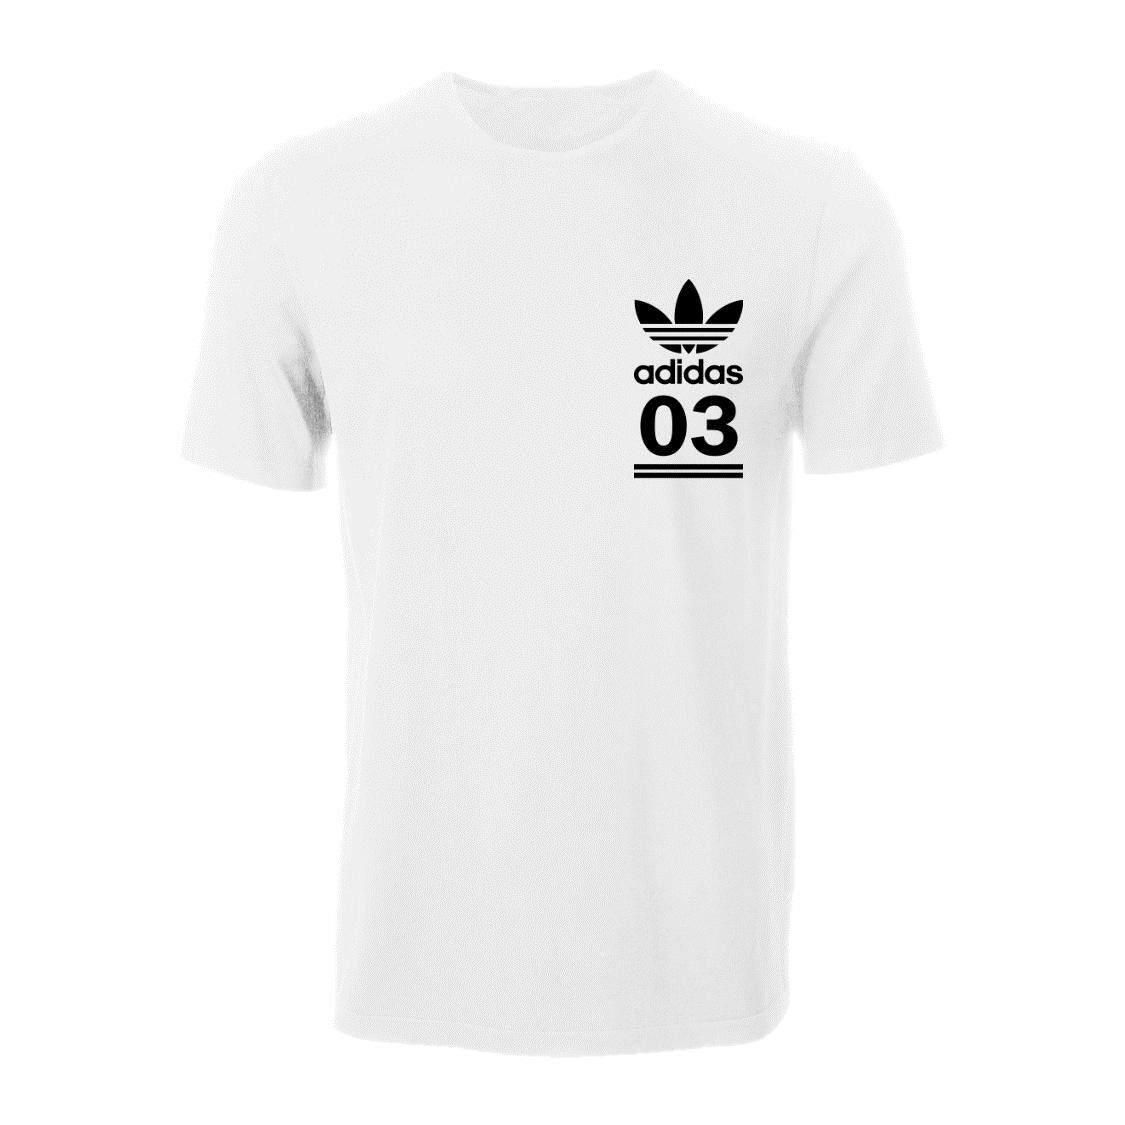 Adidas Products Accessories At Best Price In Malaysia Lazada Adp3156 Jam Tangan 03 Streetwear Tshirt Ready Stock